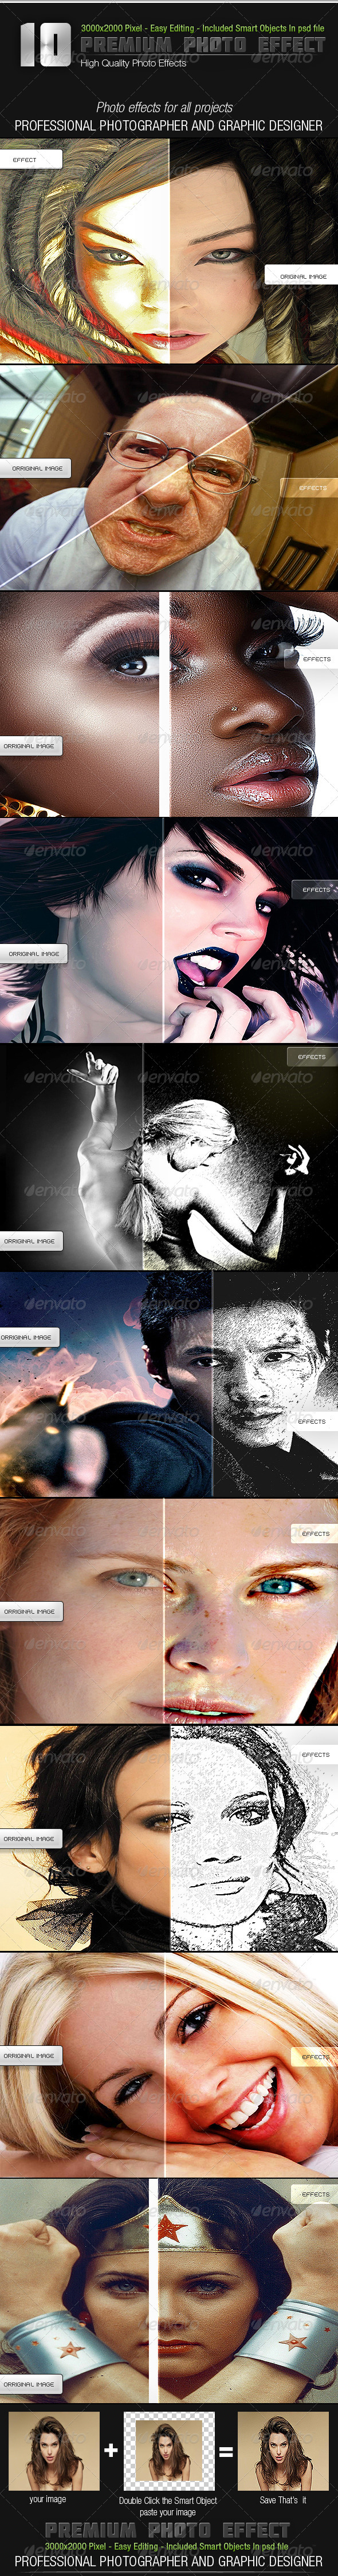 GraphicRiver Assoterd Photo Effects 3473332